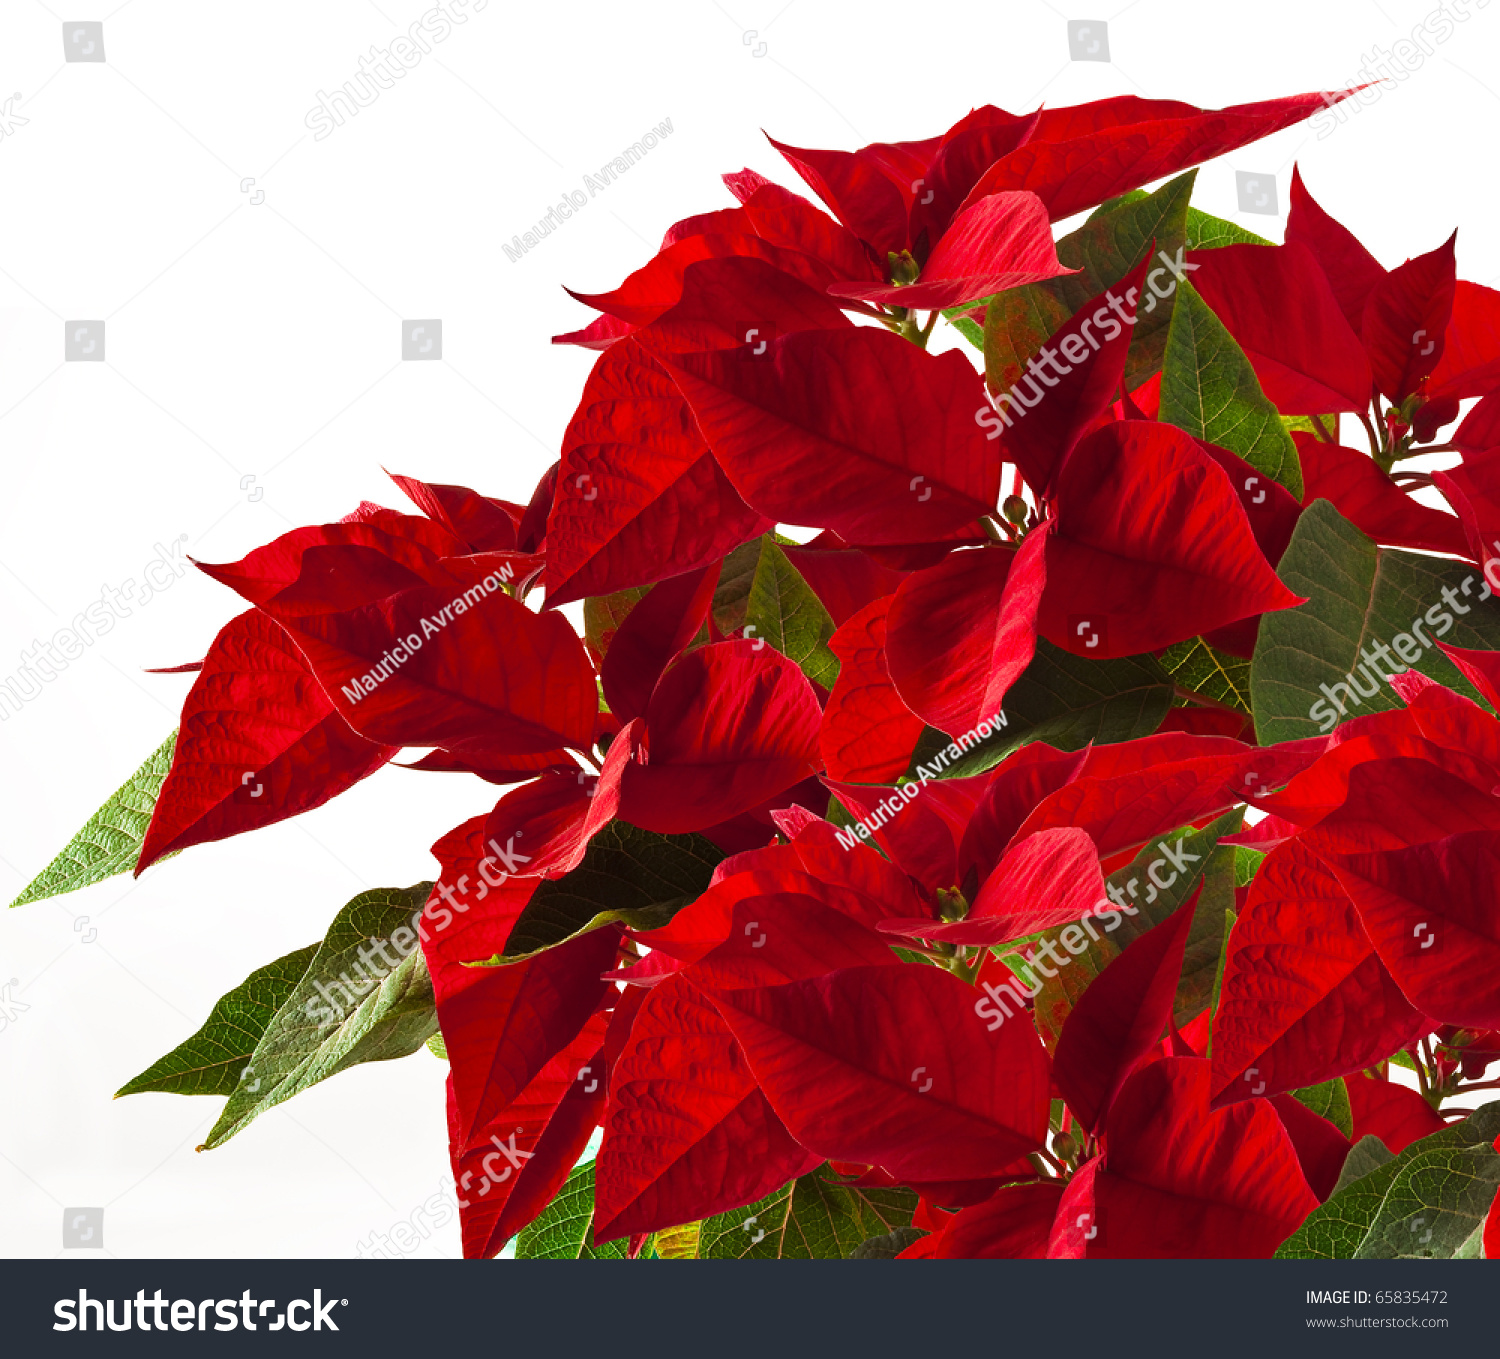 Poinsettia Traditional Christmas Red Flower Stock Photo